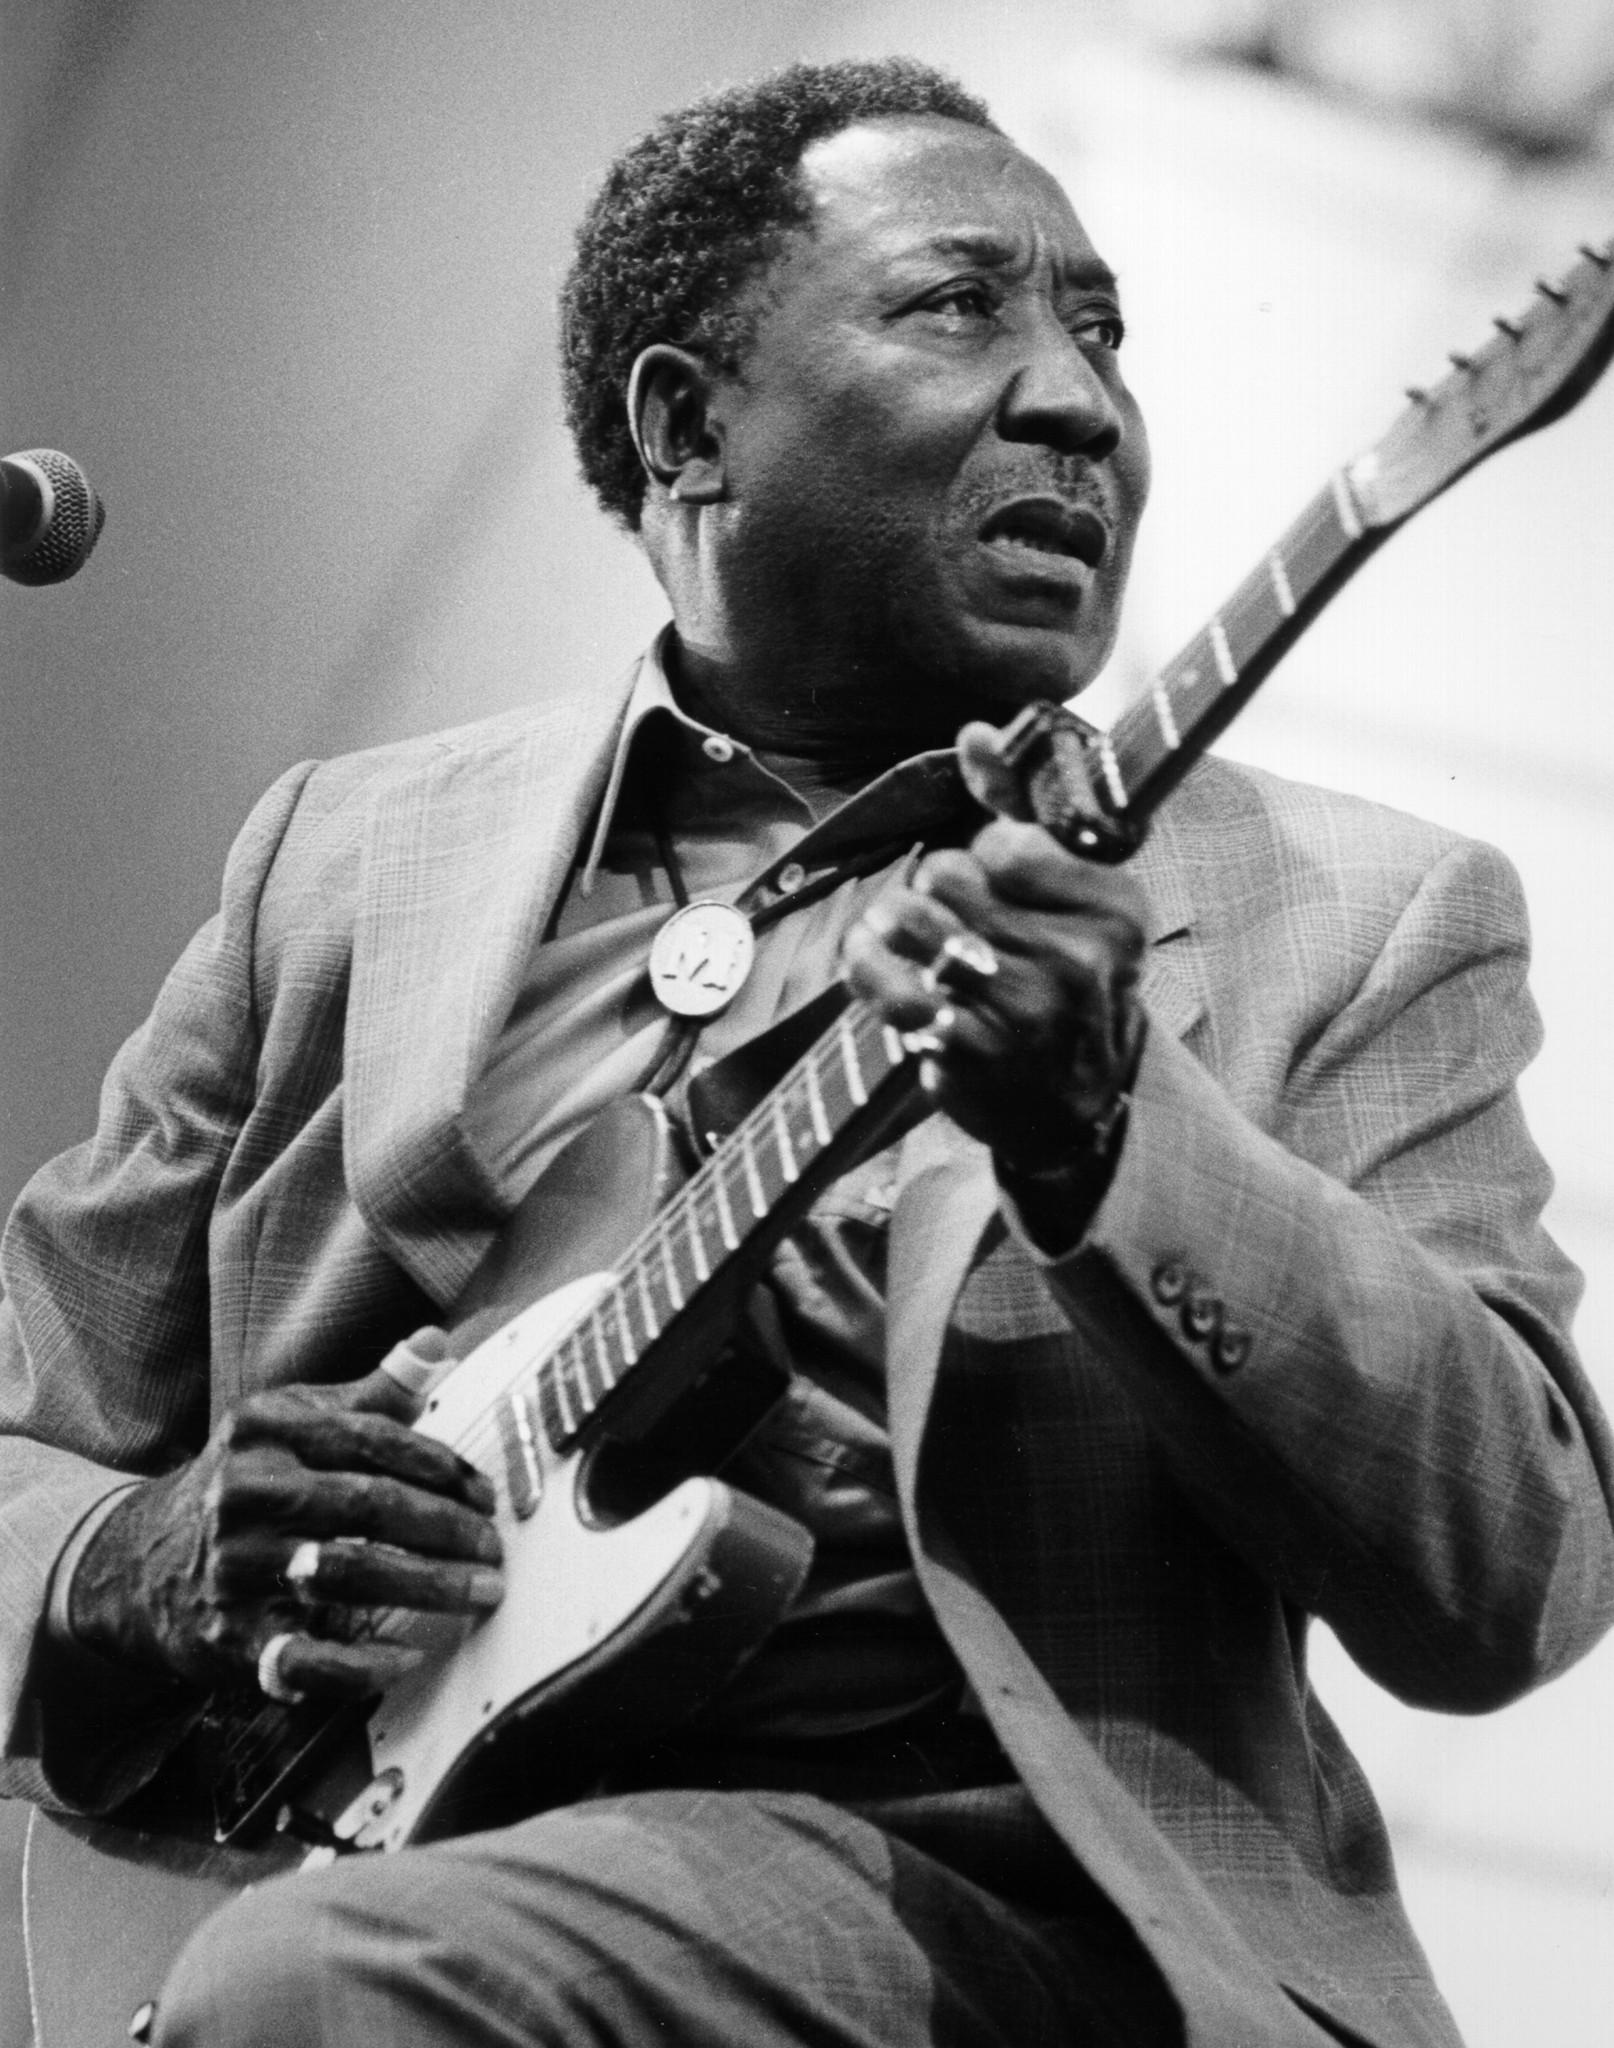 Blues Legend Muddy Waters